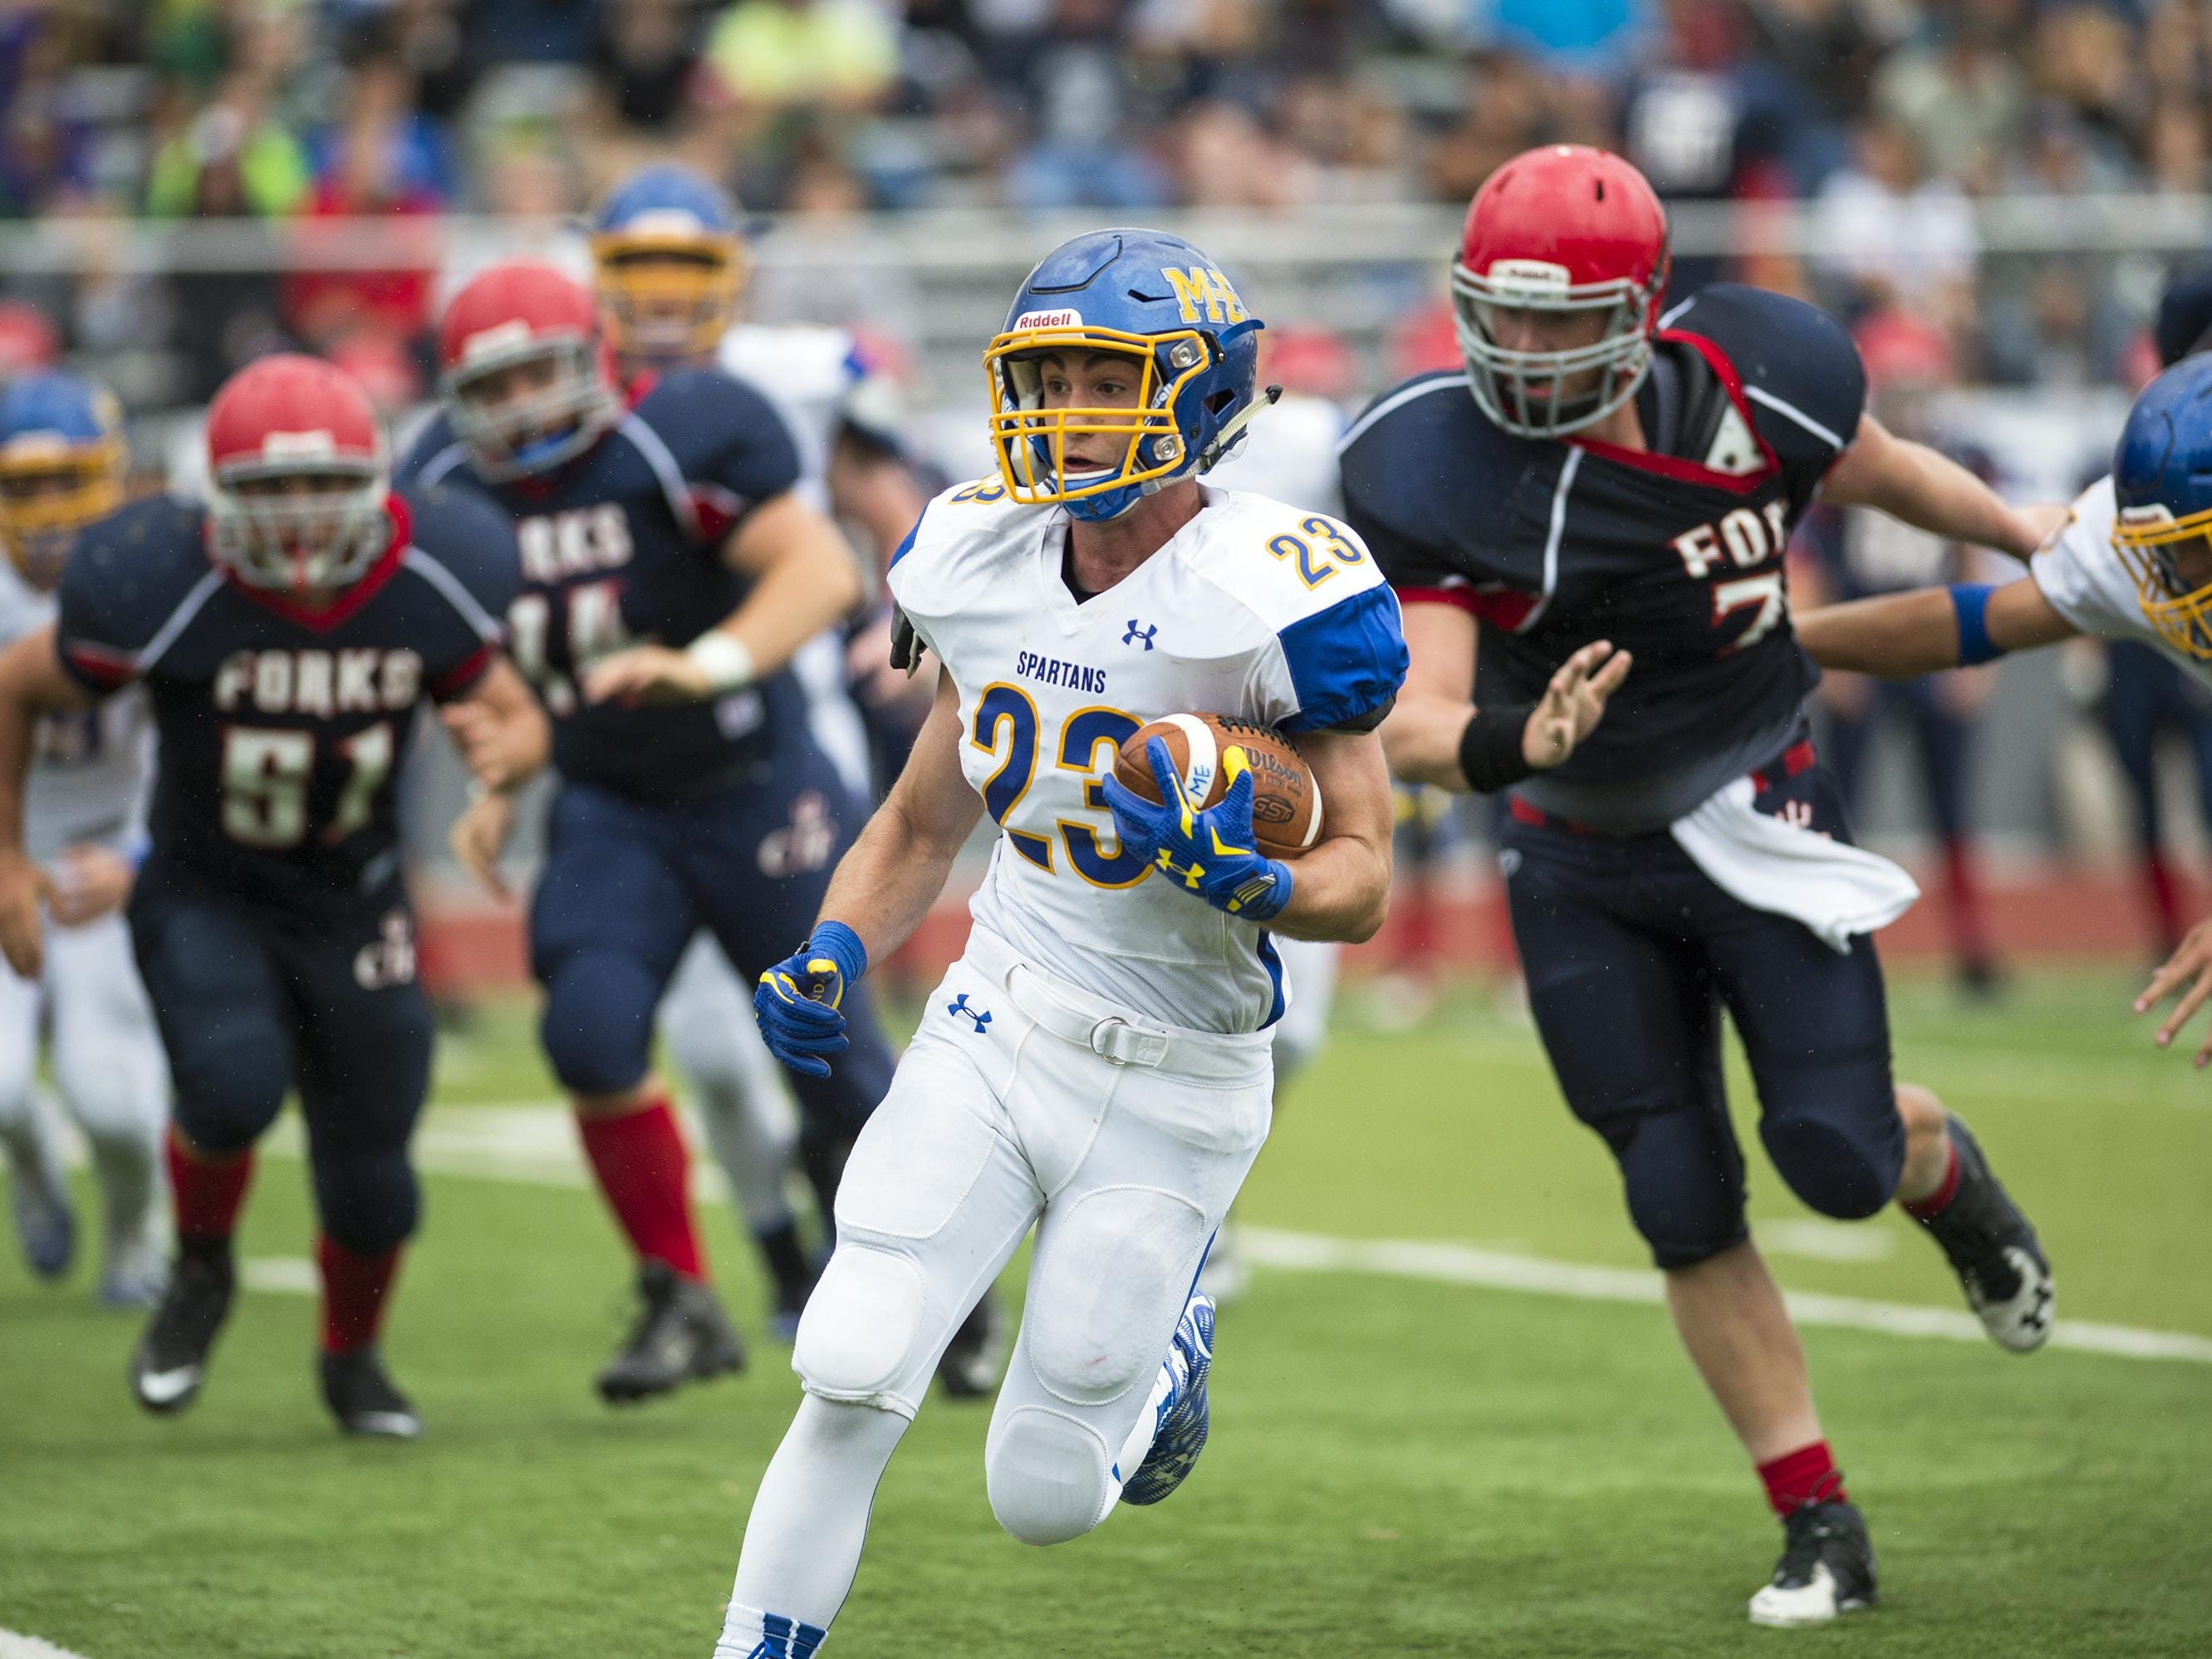 Maine-Endwell running back John Cerra rushes the ball during the third quarter against Chenango Forks on Saturday, Sept. 12, 2015. M-E defeated Chenango Forks 28-21.